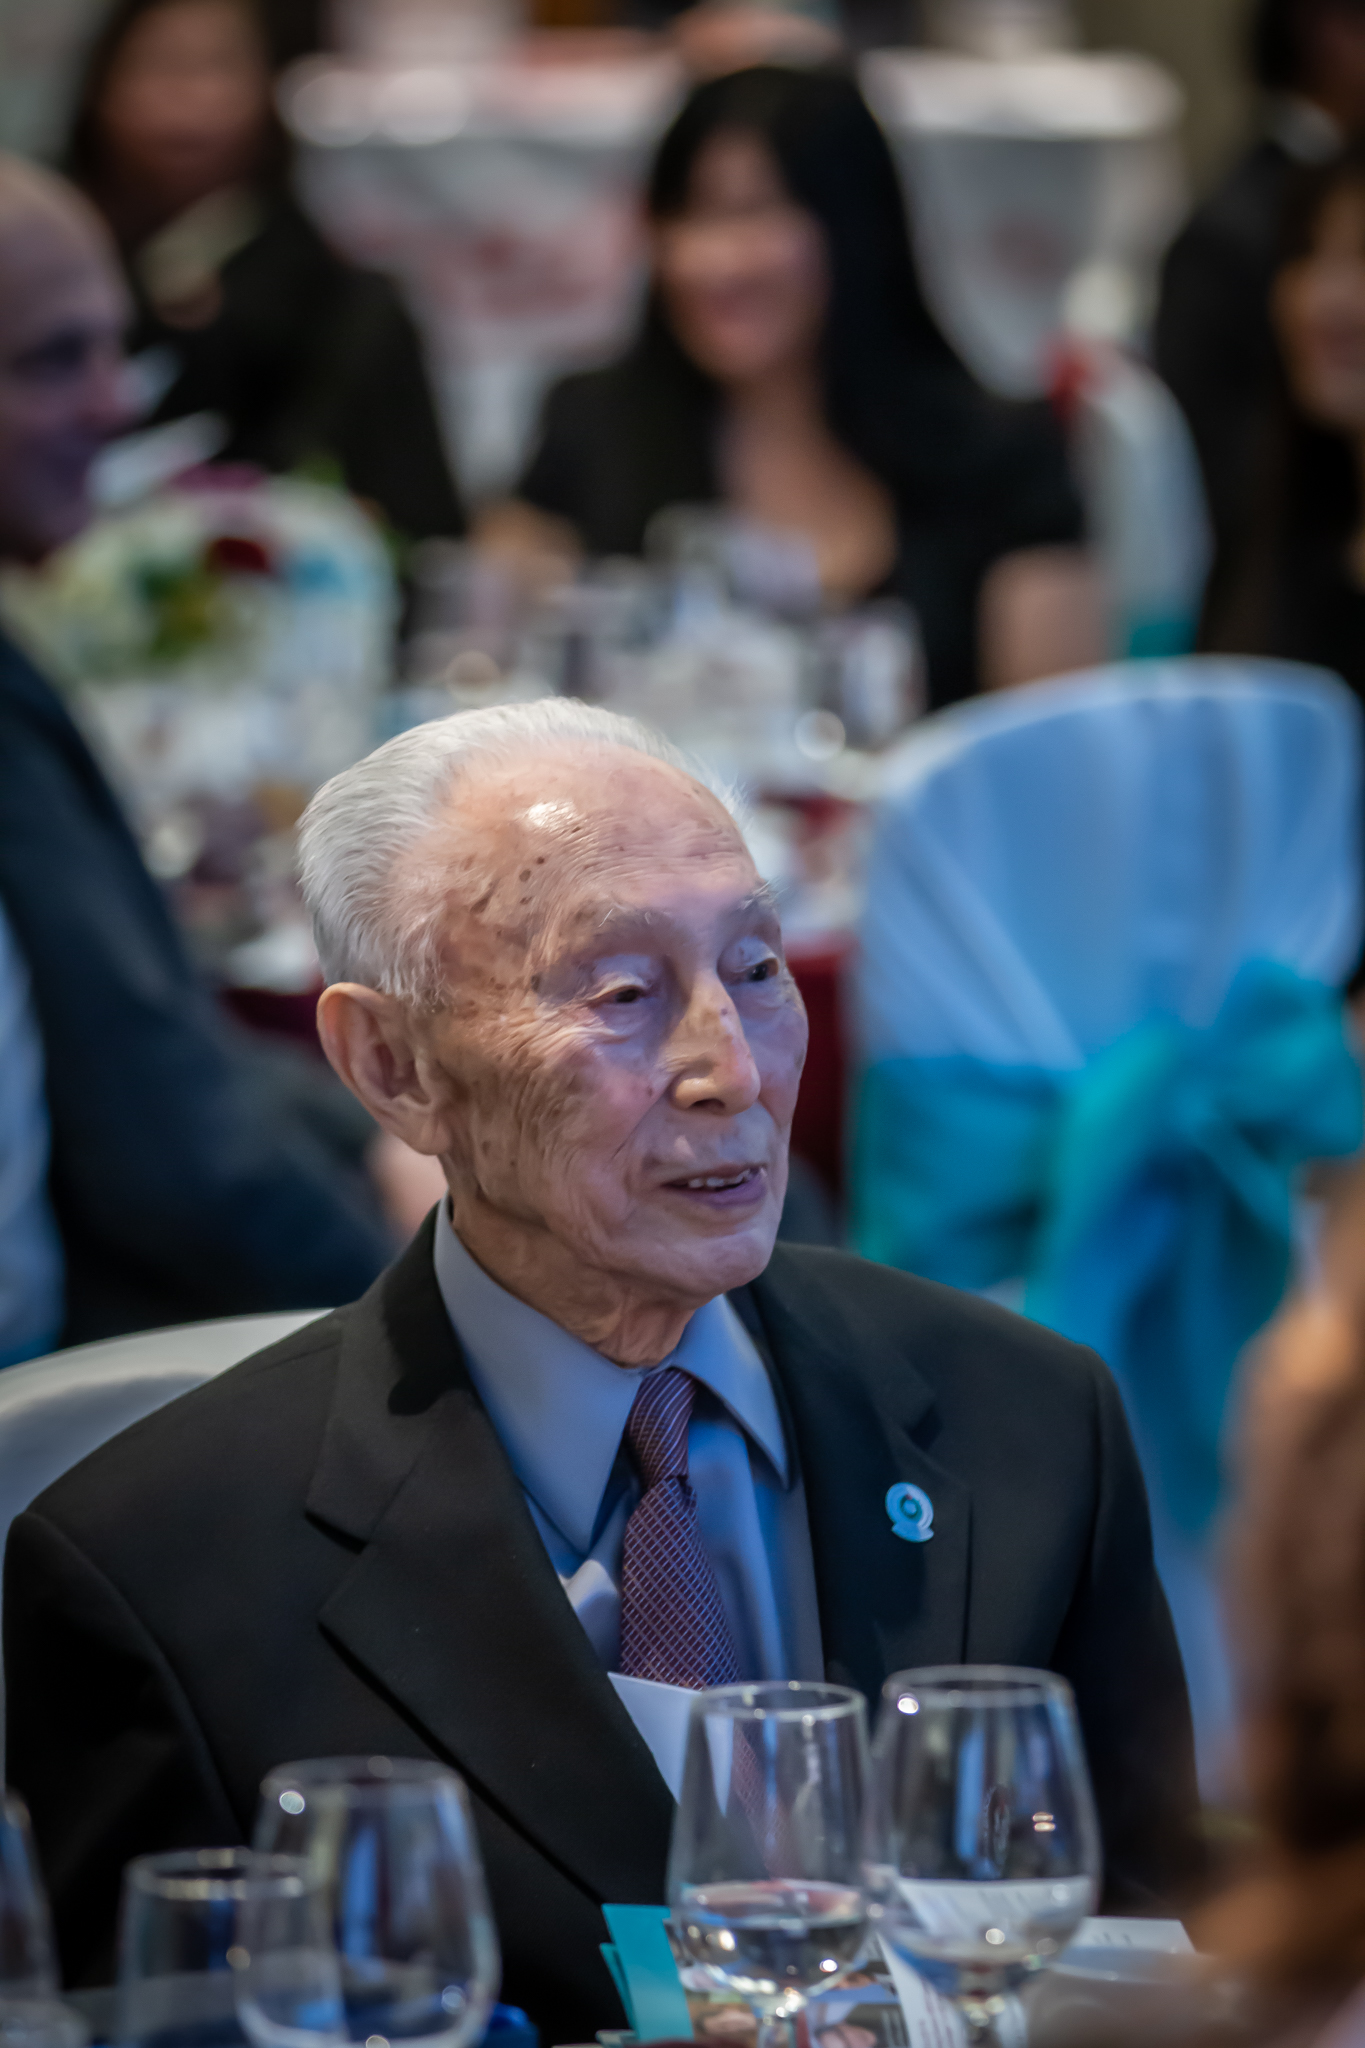 190310 Sakura Gala 2019 20-11-15-2 - Photo by Adam PW Smith.jpg